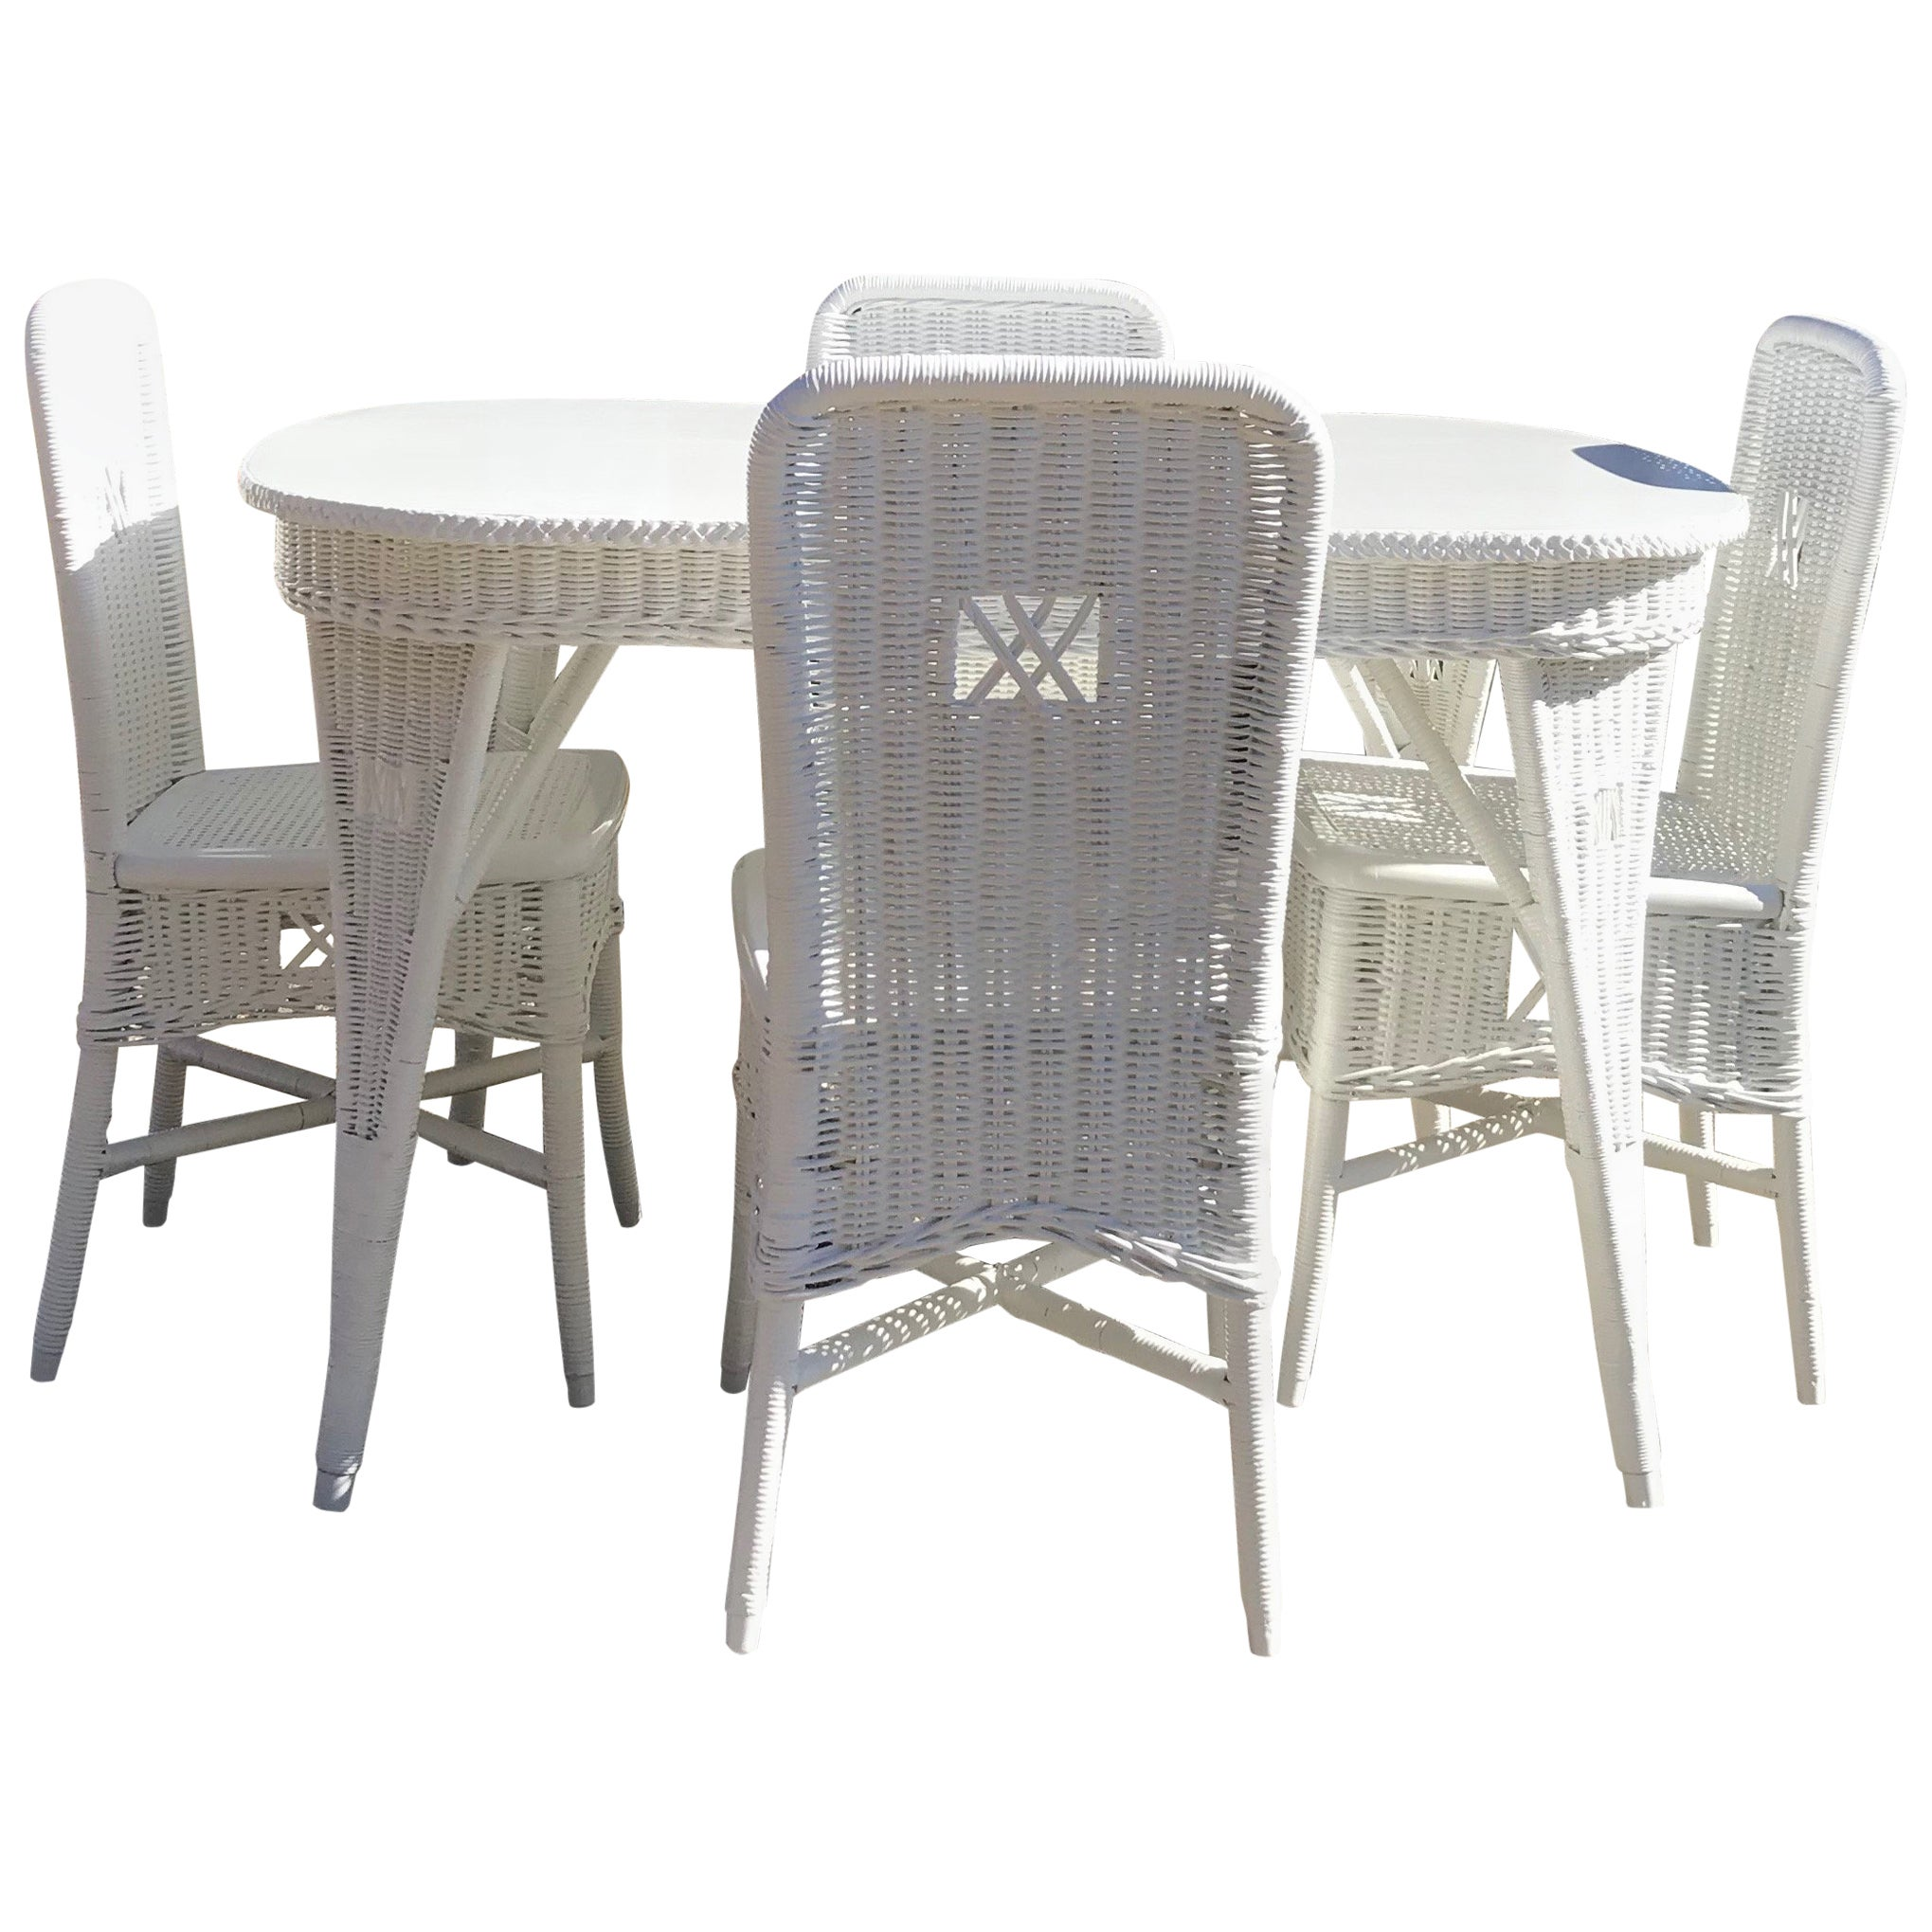 Antique Wicker Dining Table and Chairs